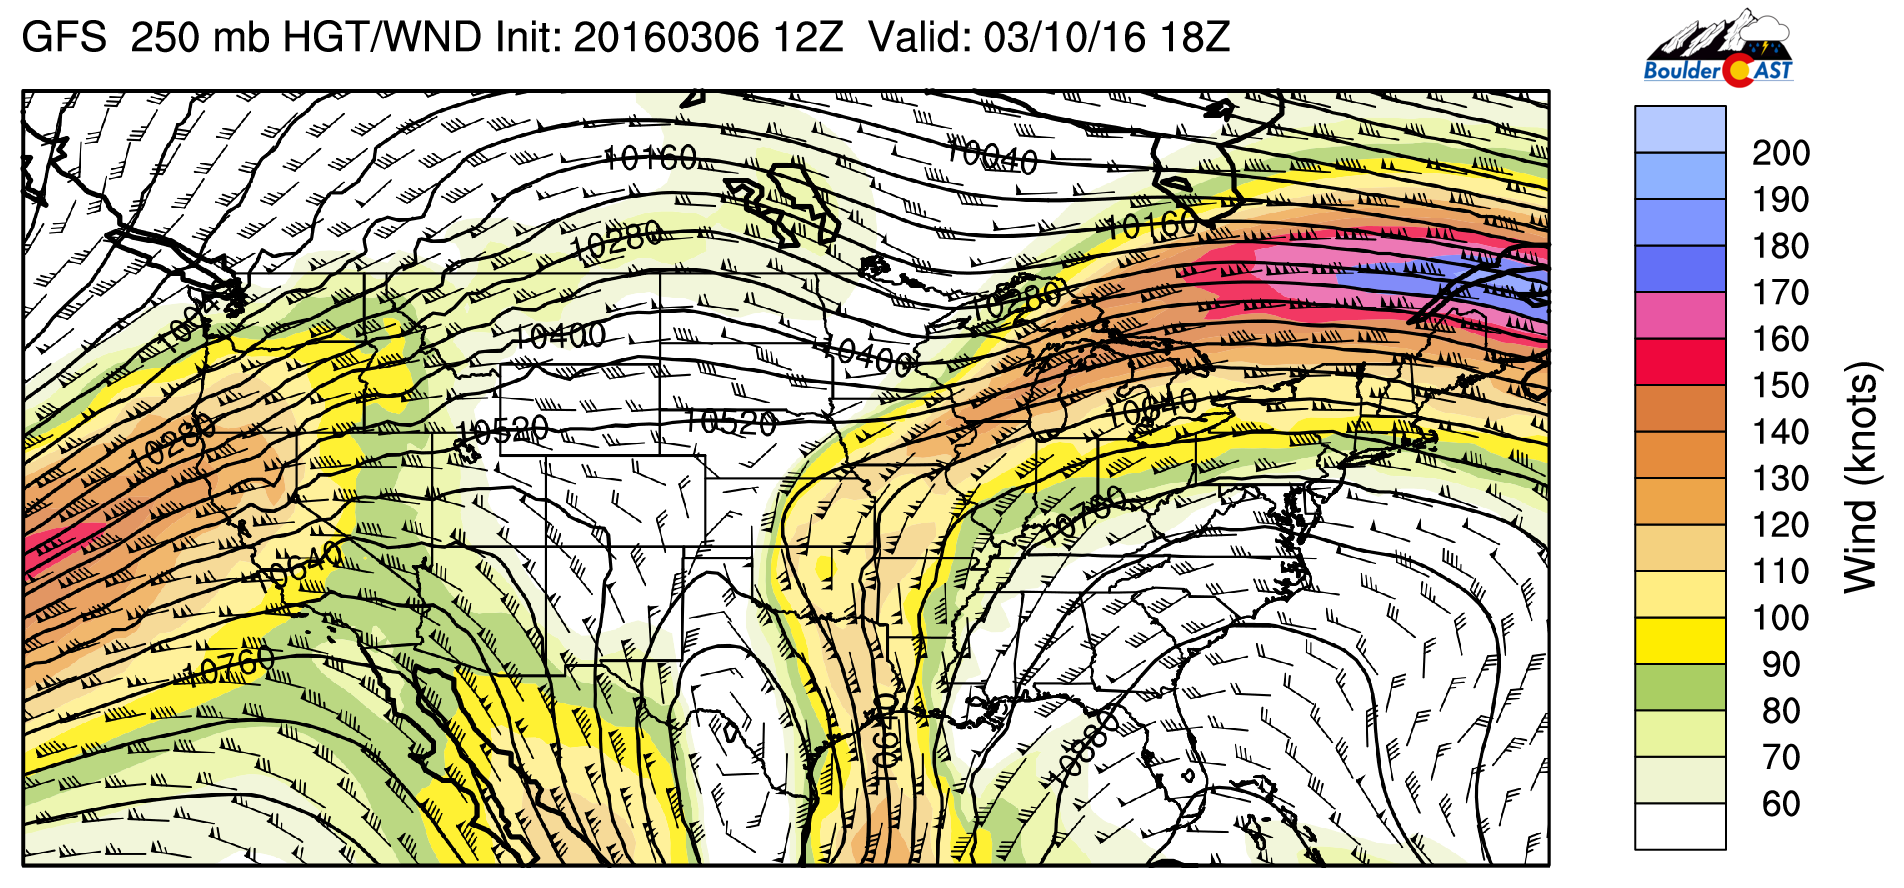 GFS 250 mb upper-level winds and heights for Thursday